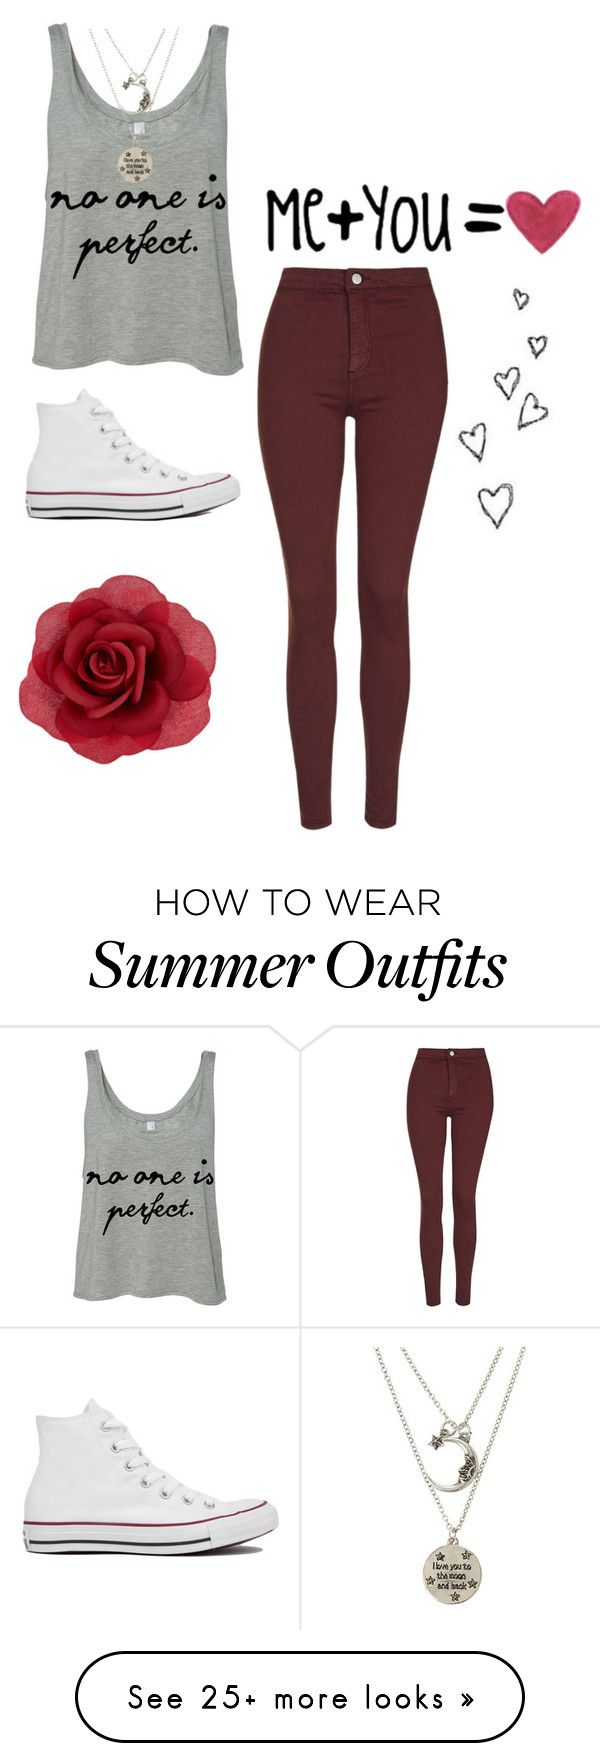 """""""Perfect isn't real"""" by emzing-horton on Polyvore featuring Topshop, Katie, Accessorize, Brinley Co, Converse, women's clothing, women's fashion, women, female and woman"""